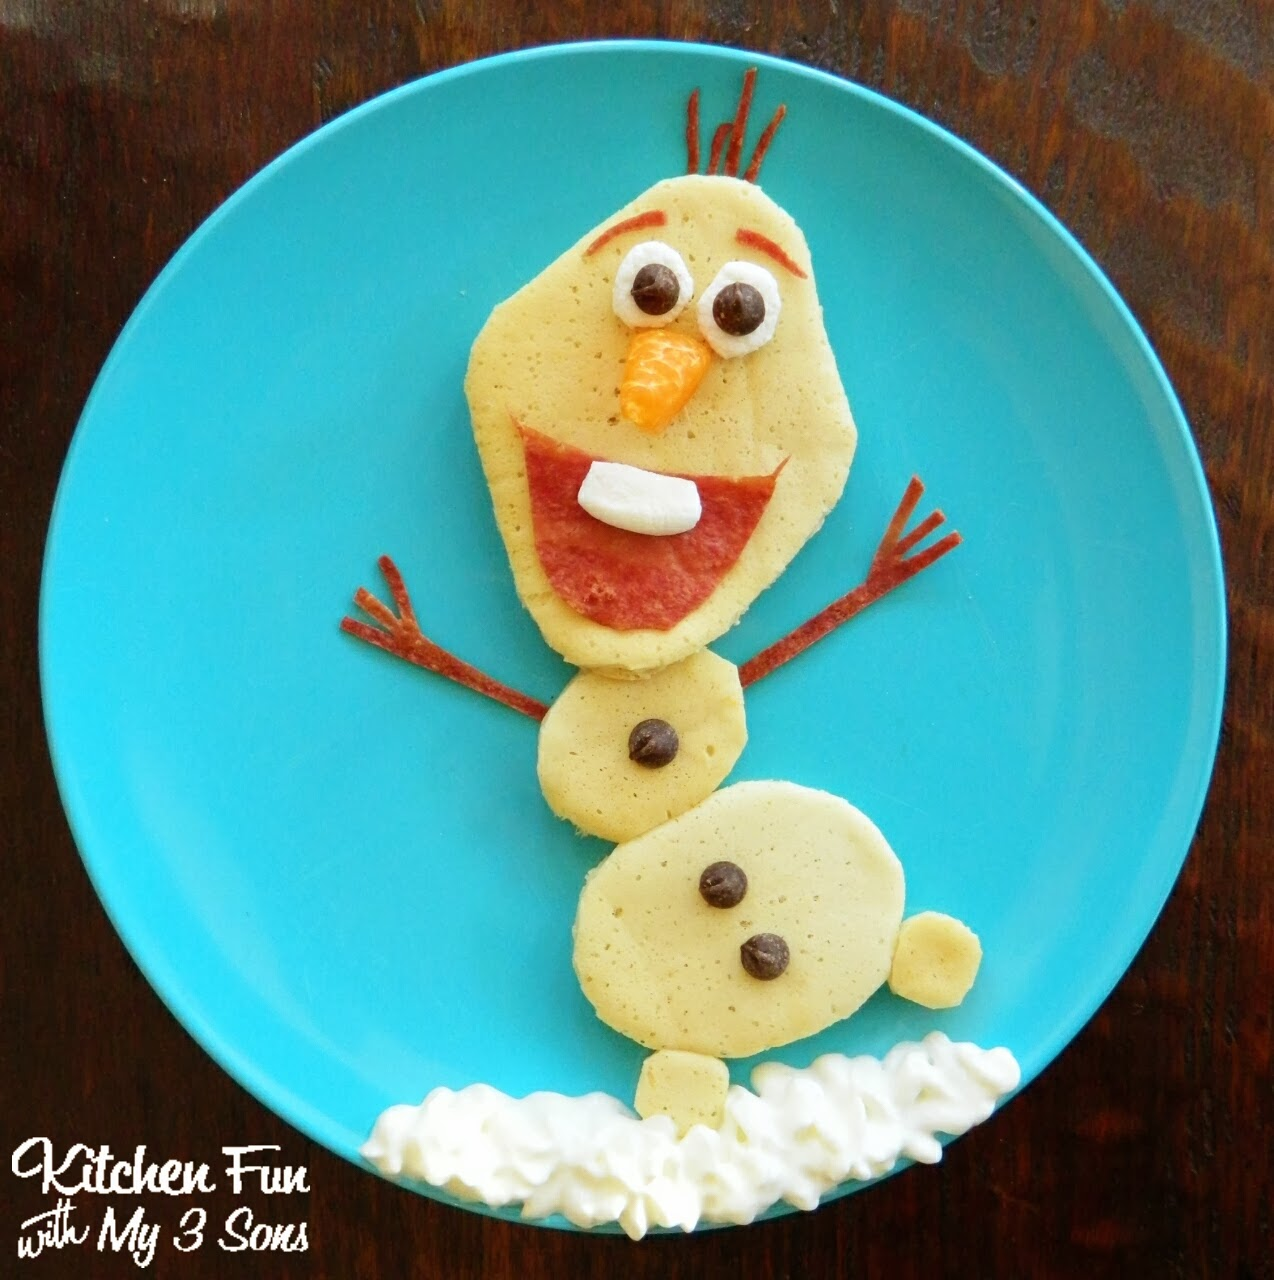 Wedding Ideas For Spring also Hollywood Party besides 4 besides Disneys Frozen Olaf Pancakes For likewise 42657. on oscar party ideas cake decorating